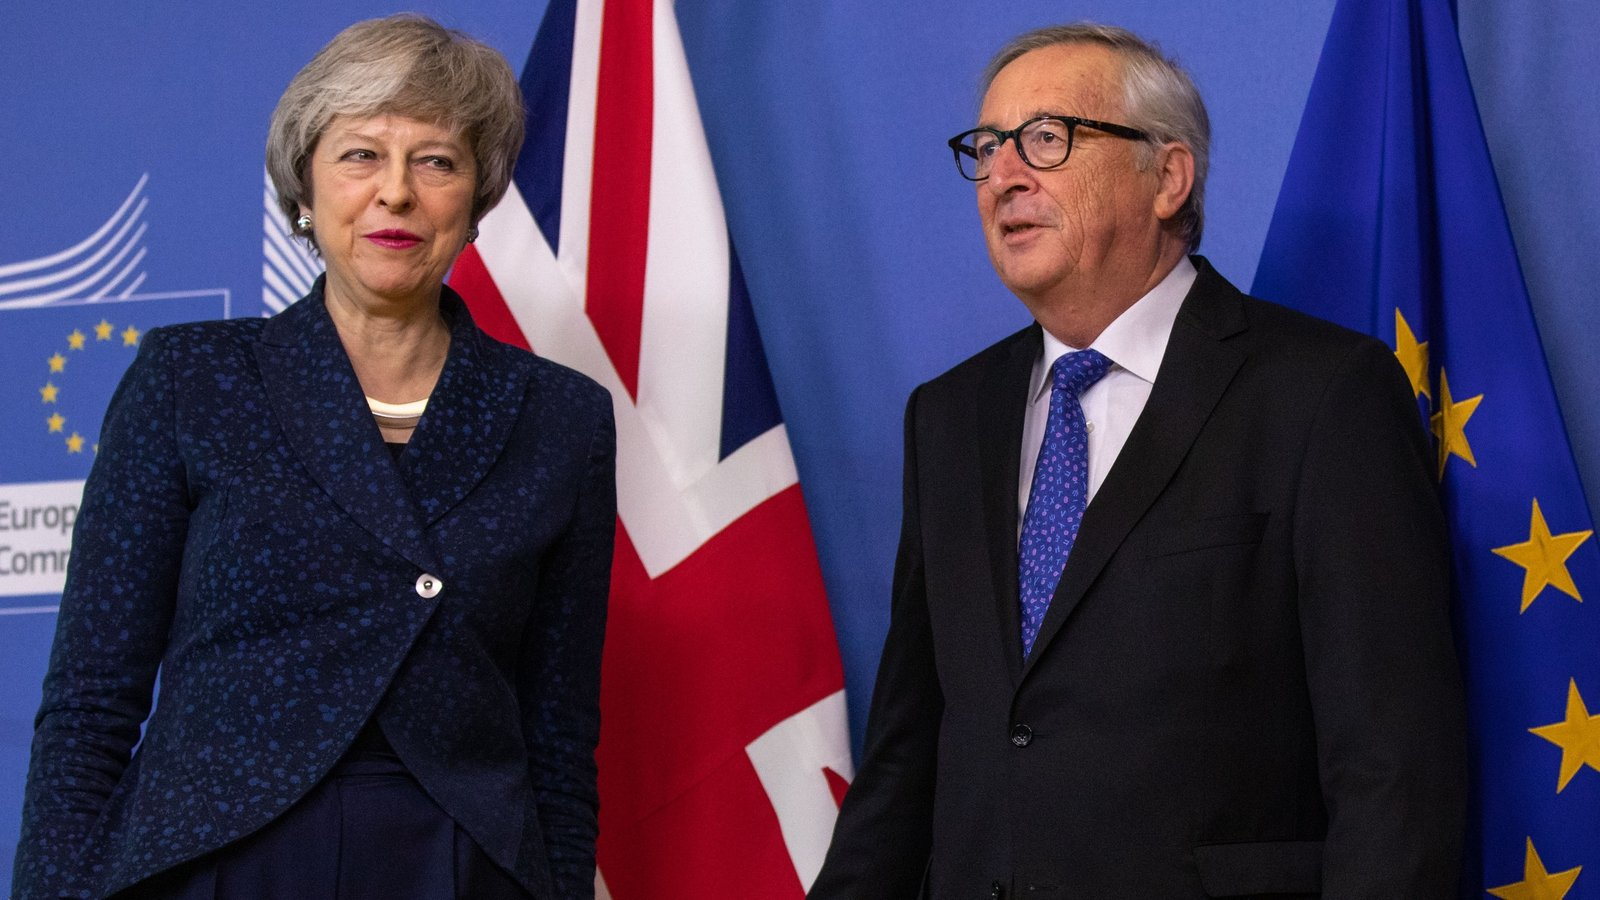 Commission says it will not reopen Withdrawal Agreement